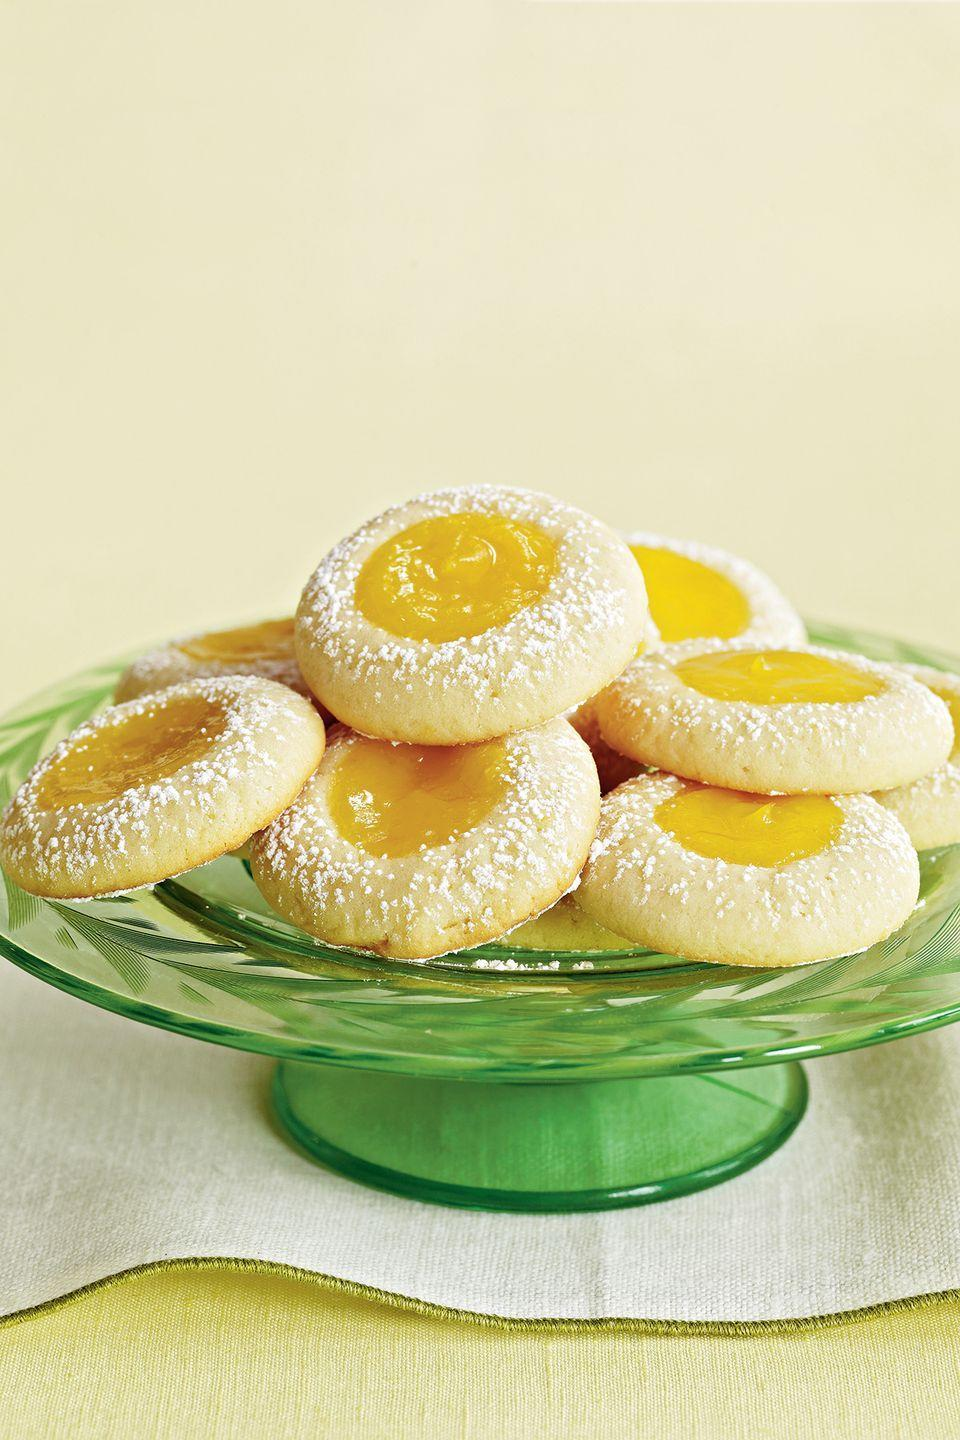 """<p>If mom loves all things lemon, she won't be able to keep her hands off these bite-sized treats, which are filled with lemon curd and lightly dusted with sugar.</p><p><strong><a href=""""https://www.countryliving.com/food-drinks/recipes/a31919/lemon-dimples-recipe-122290/"""" rel=""""nofollow noopener"""" target=""""_blank"""" data-ylk=""""slk:Get the recipe"""" class=""""link rapid-noclick-resp"""">Get the recipe</a>.</strong></p>"""